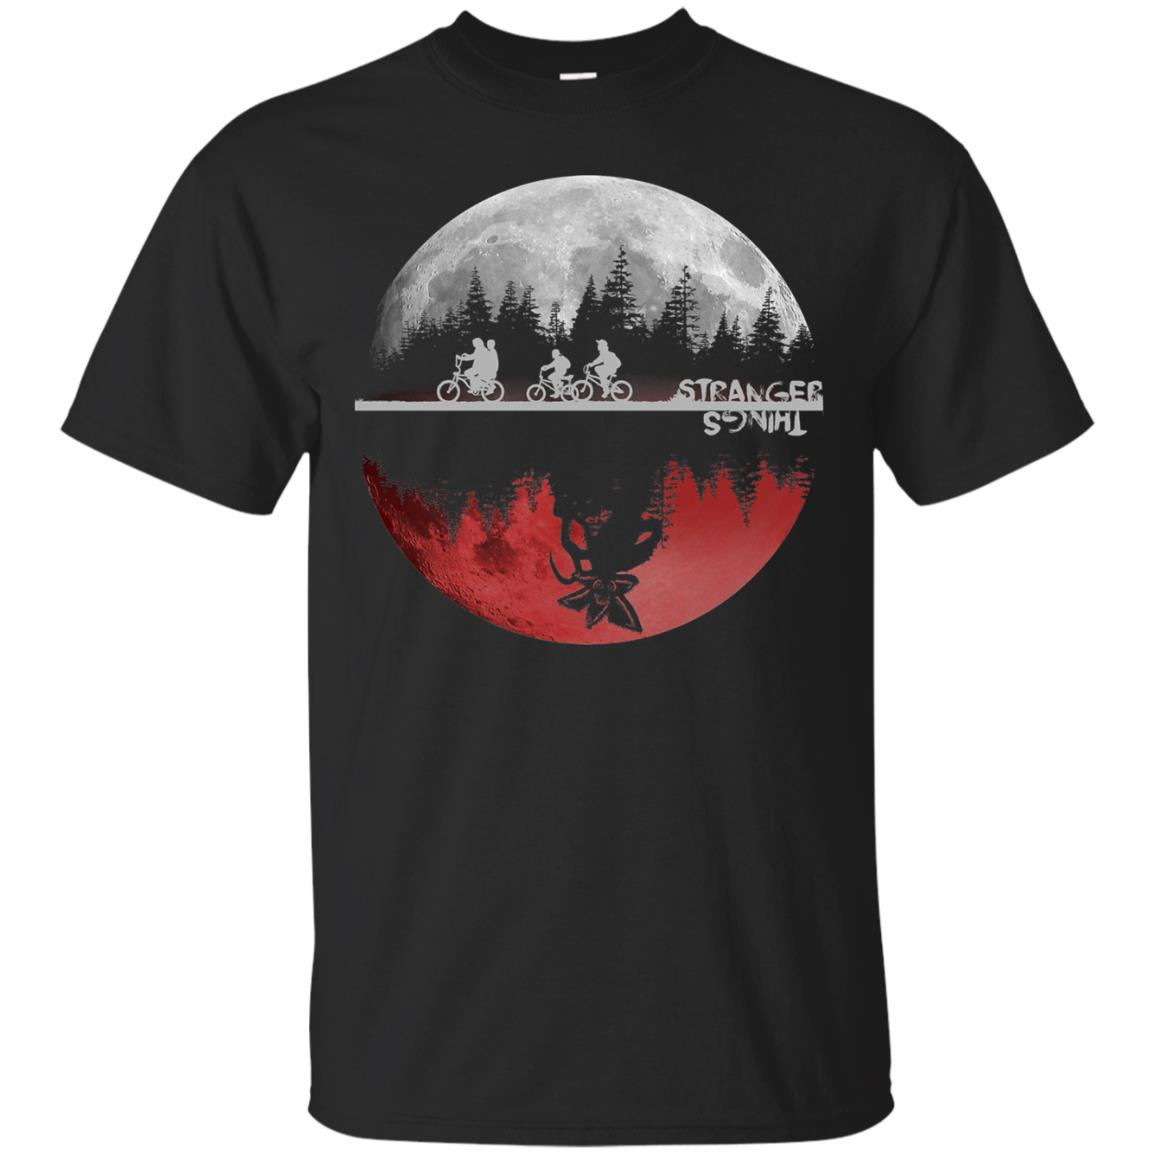 Stranger Moon T-shirt - black